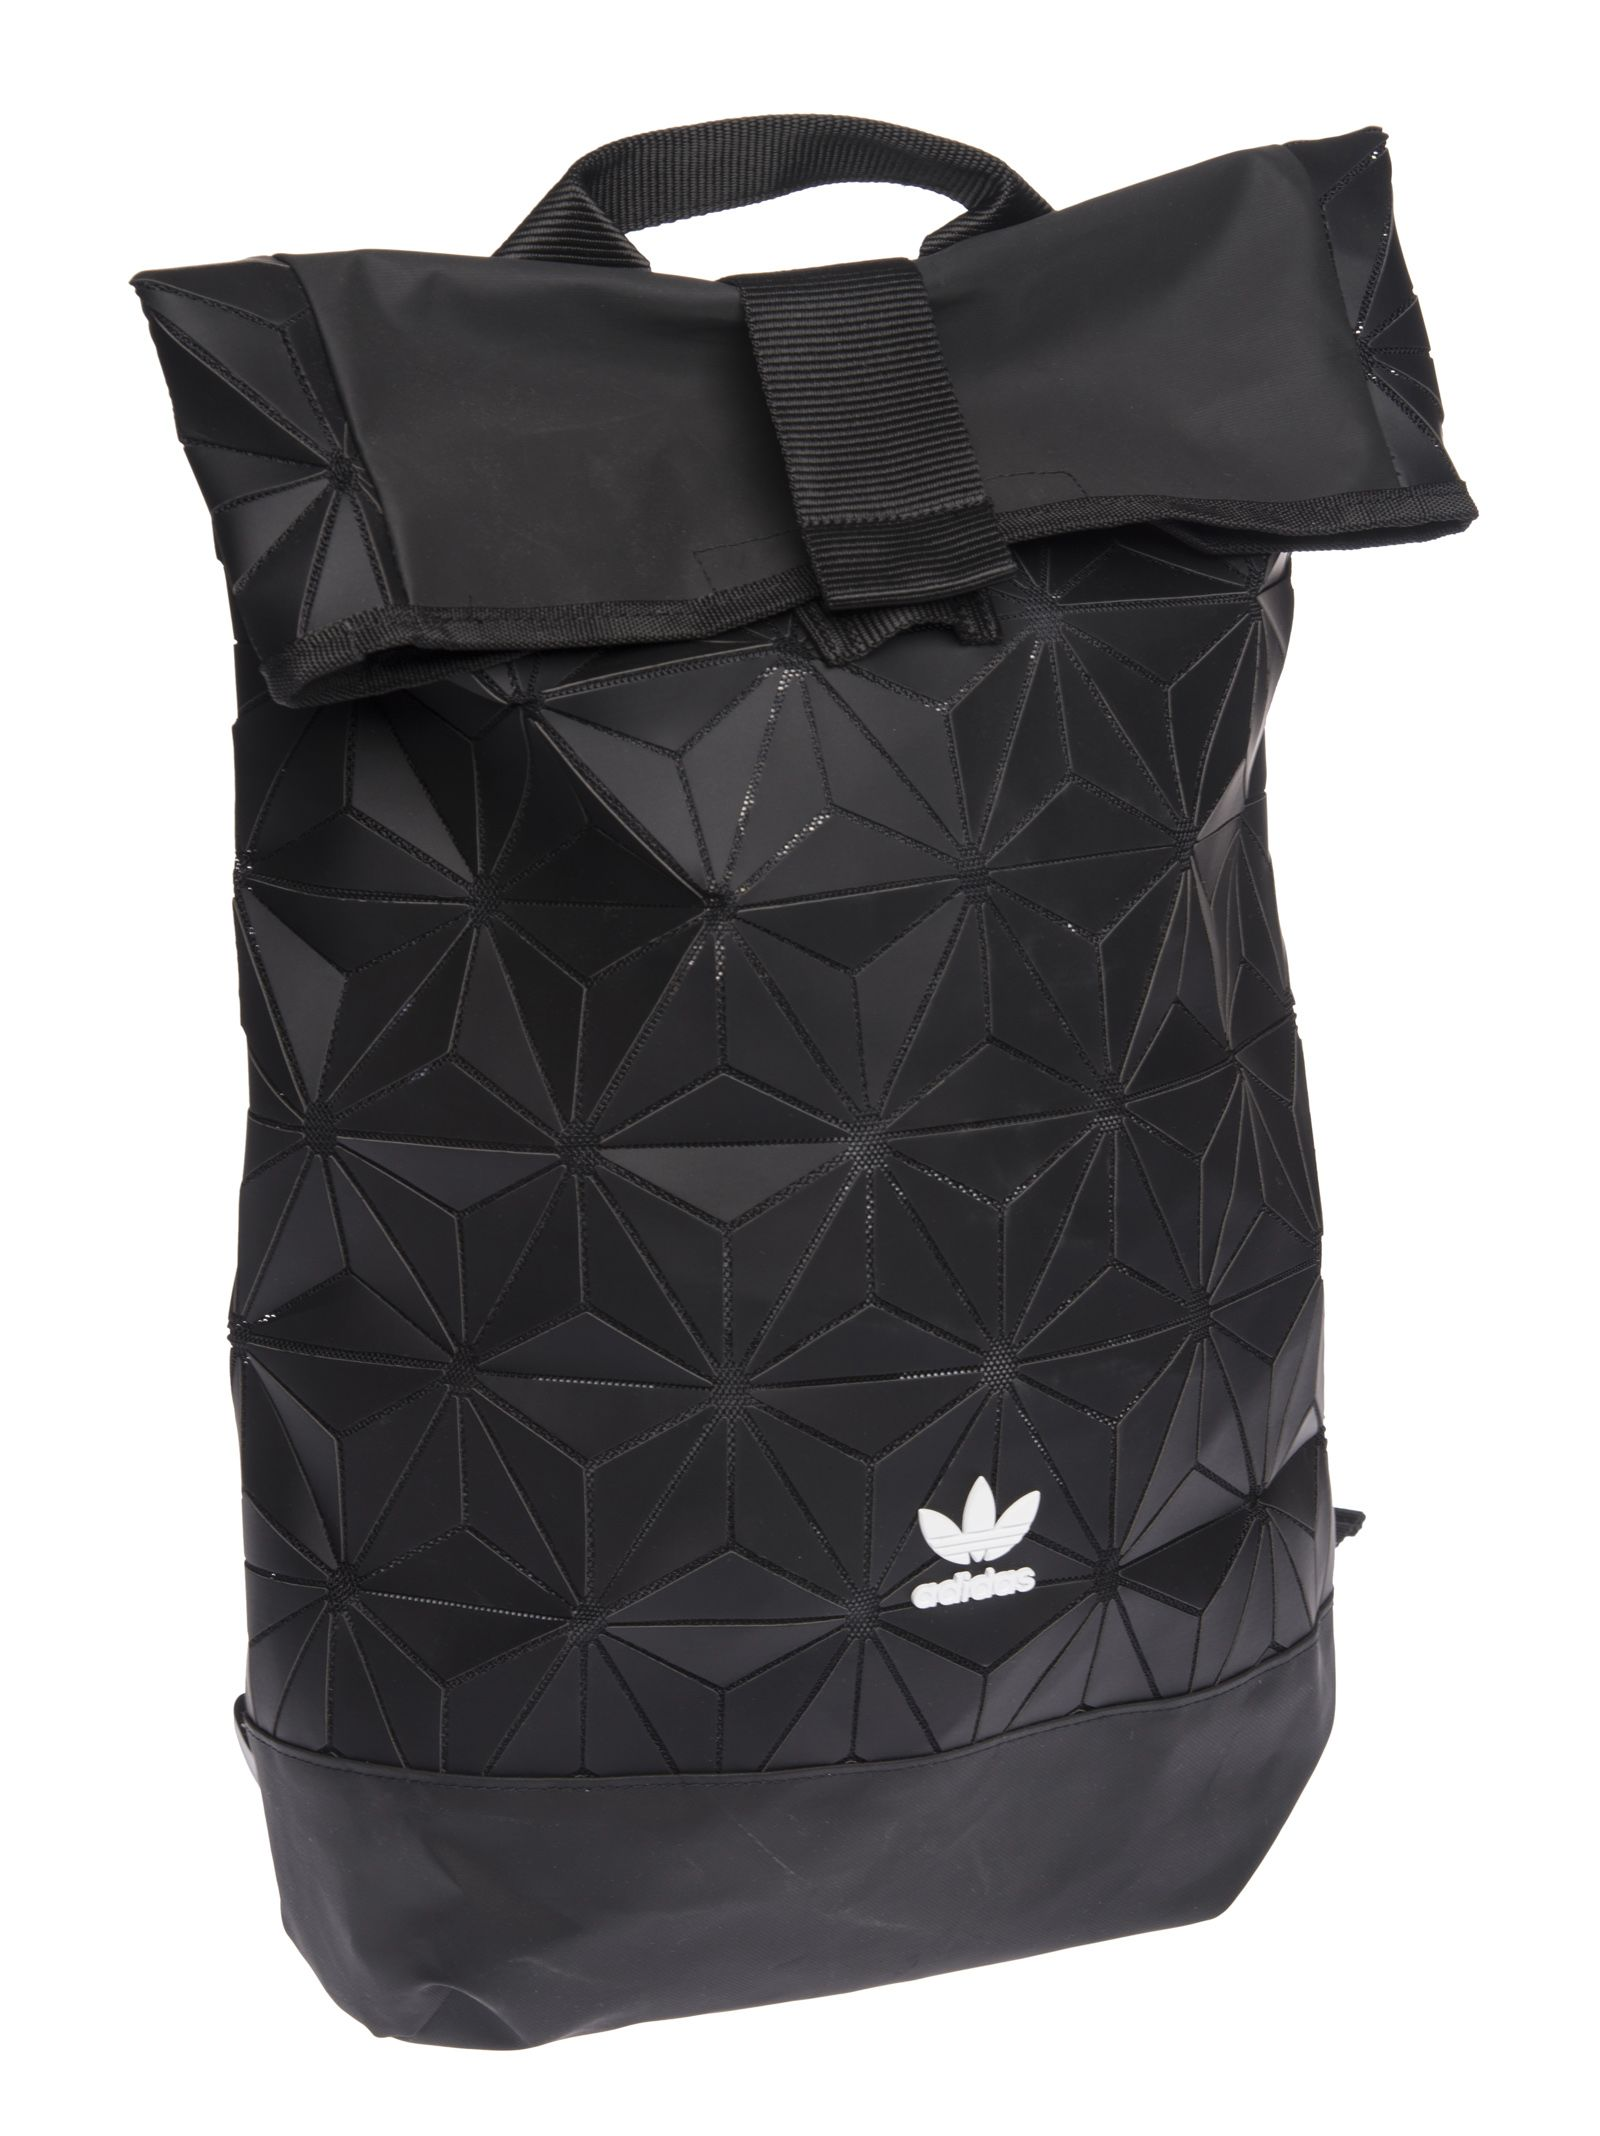 Buy adidas originals black backpack   OFF61% Discounted 450358ae45034